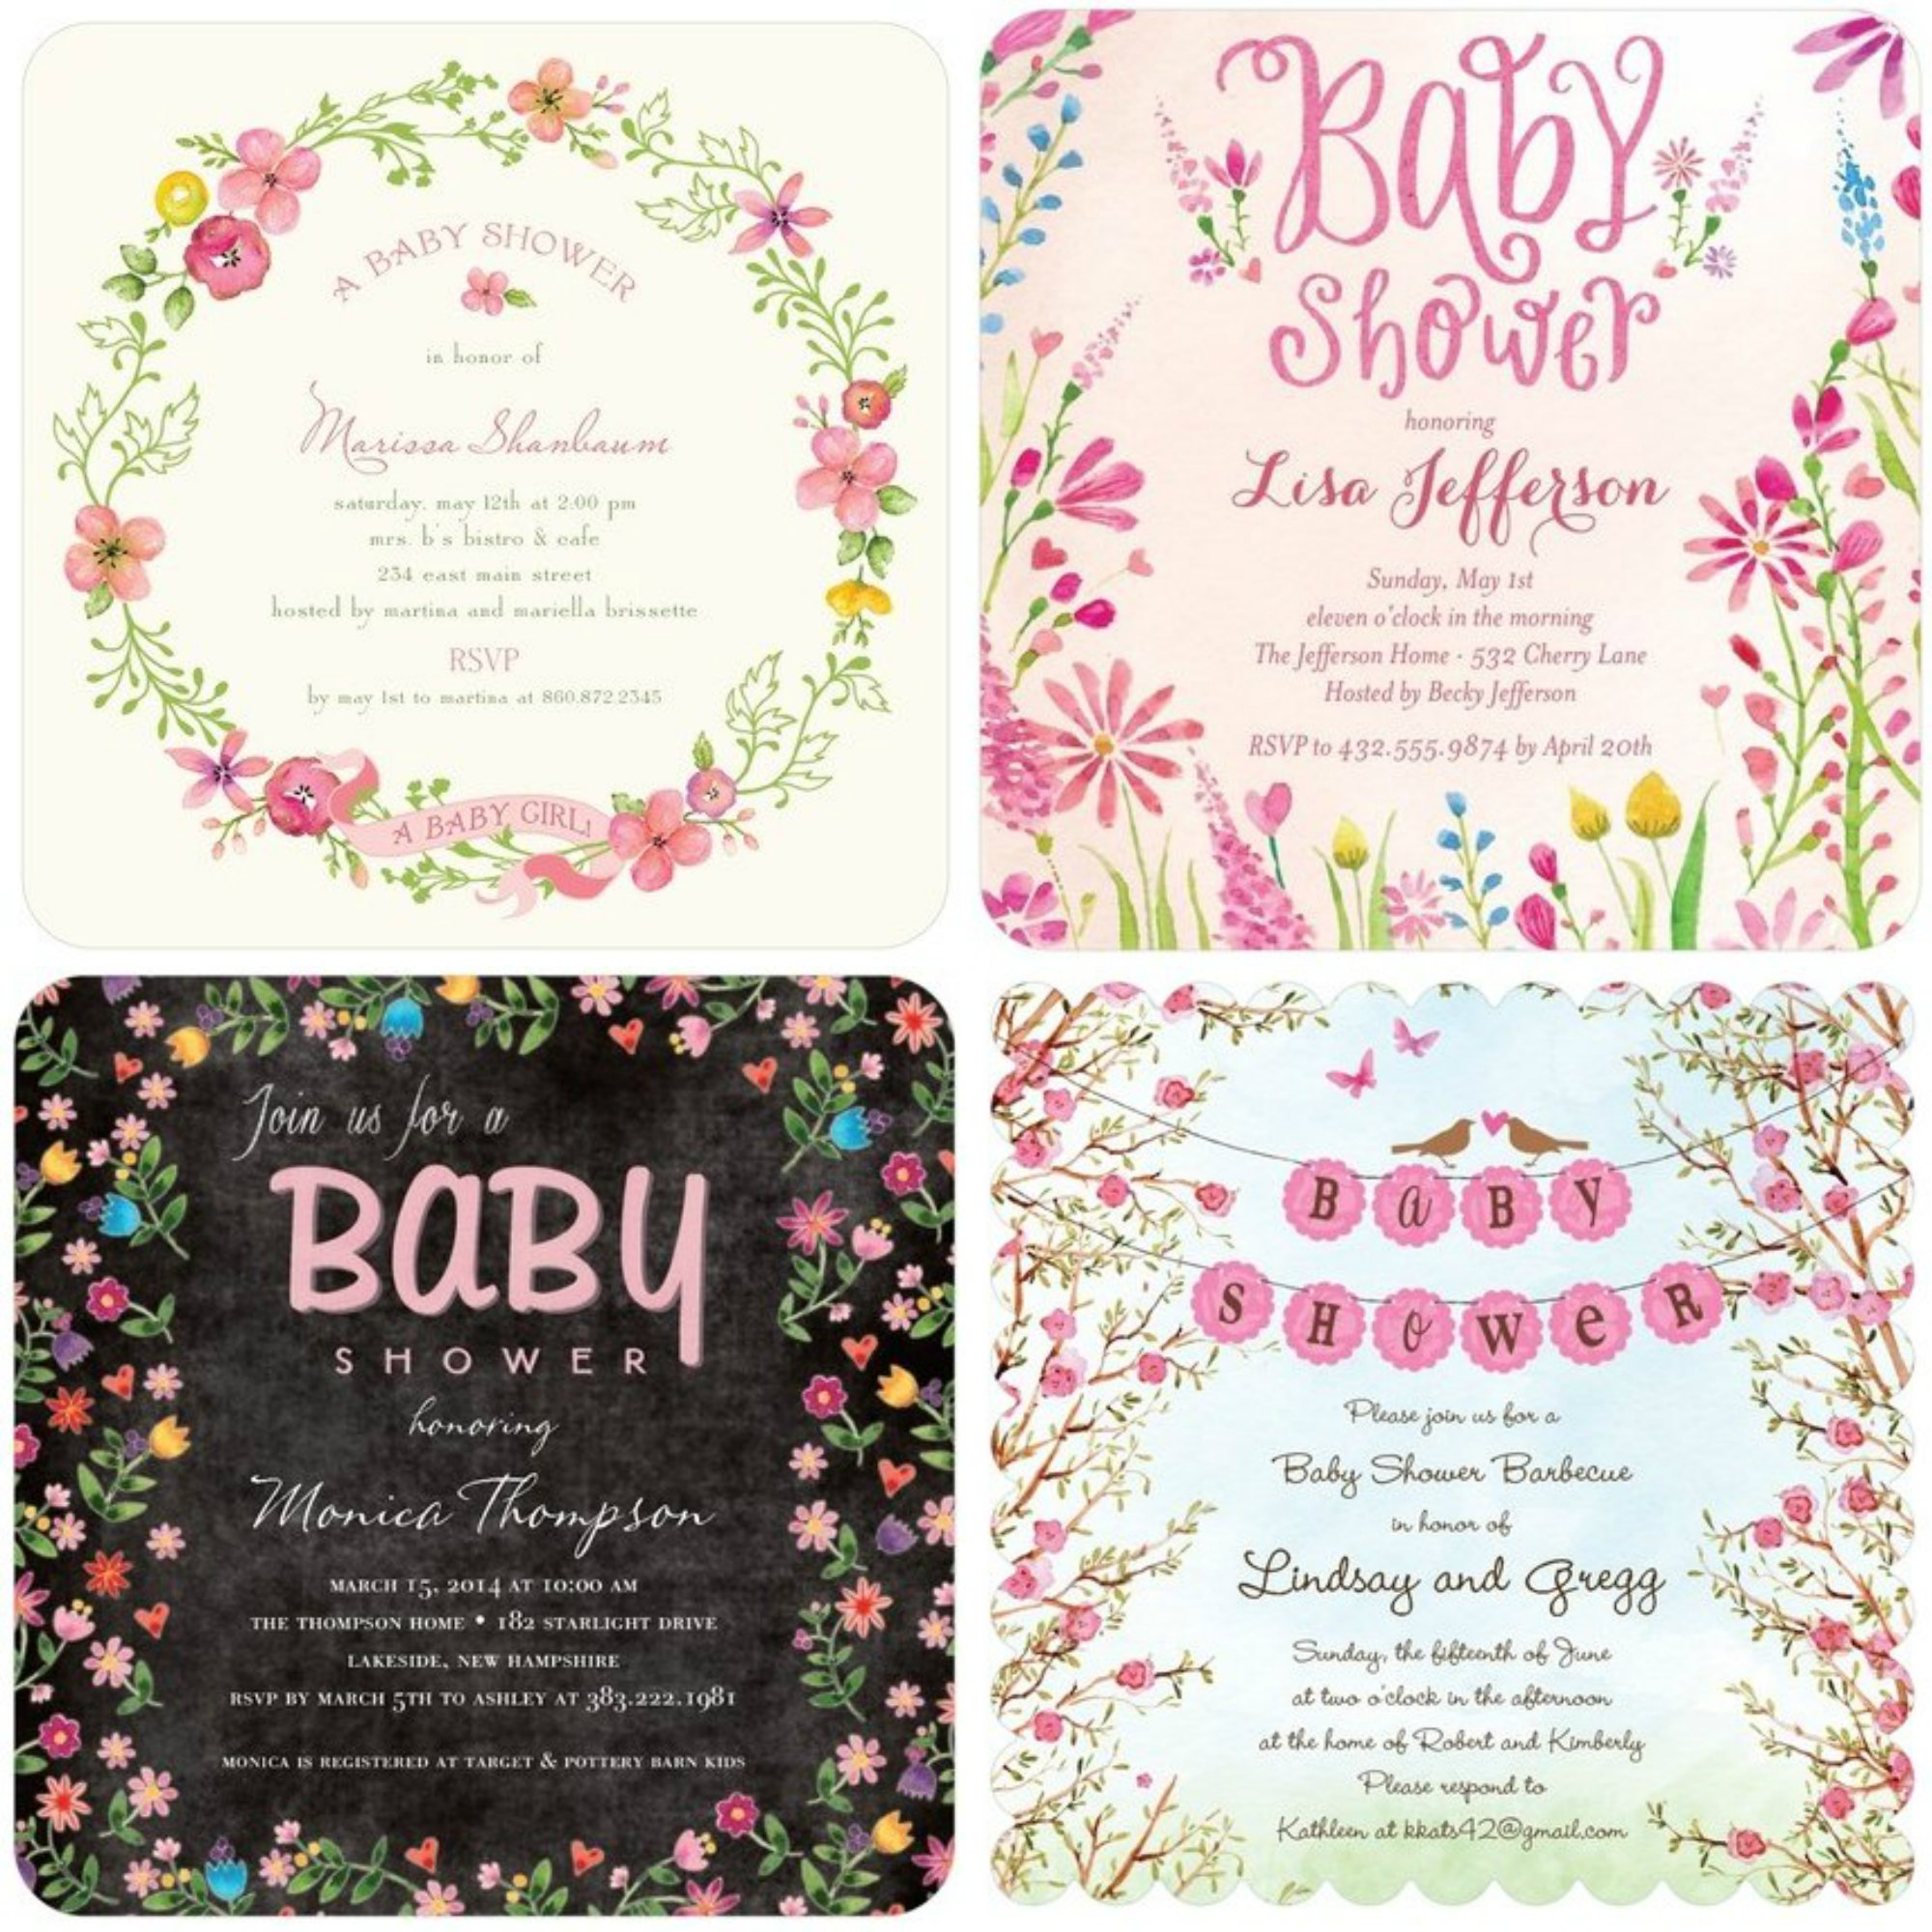 Beautiful baby shower invitations its a lovely life beautiful baby shower invitations filmwisefo